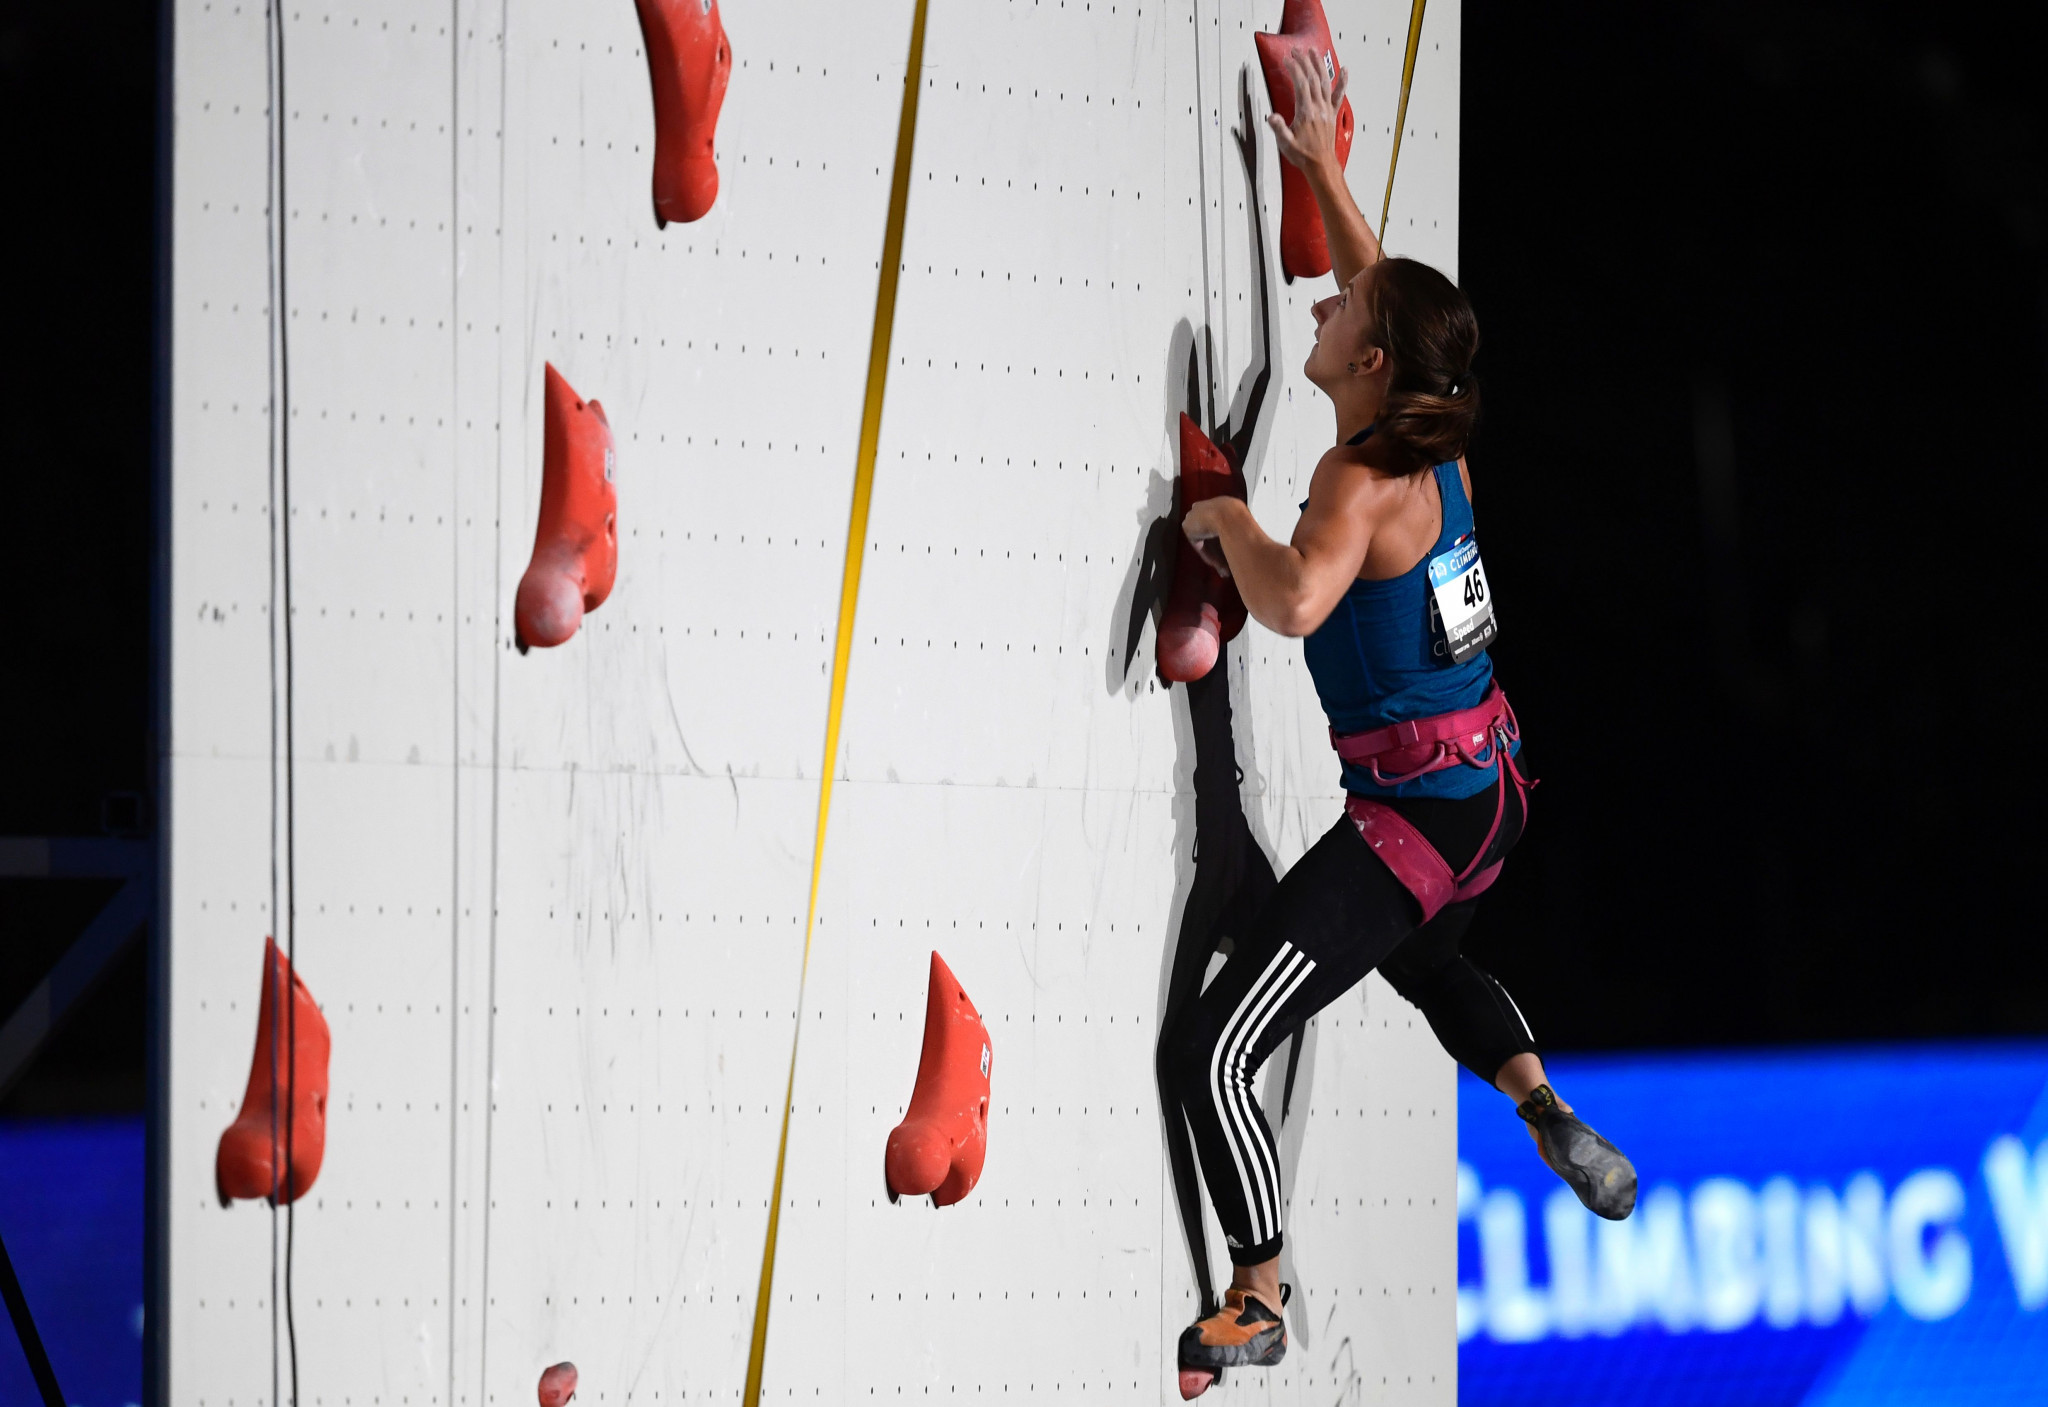 Anouck Jaubert of France was given a place at the Tokyo 2020 Olympic Games ©Getty Images